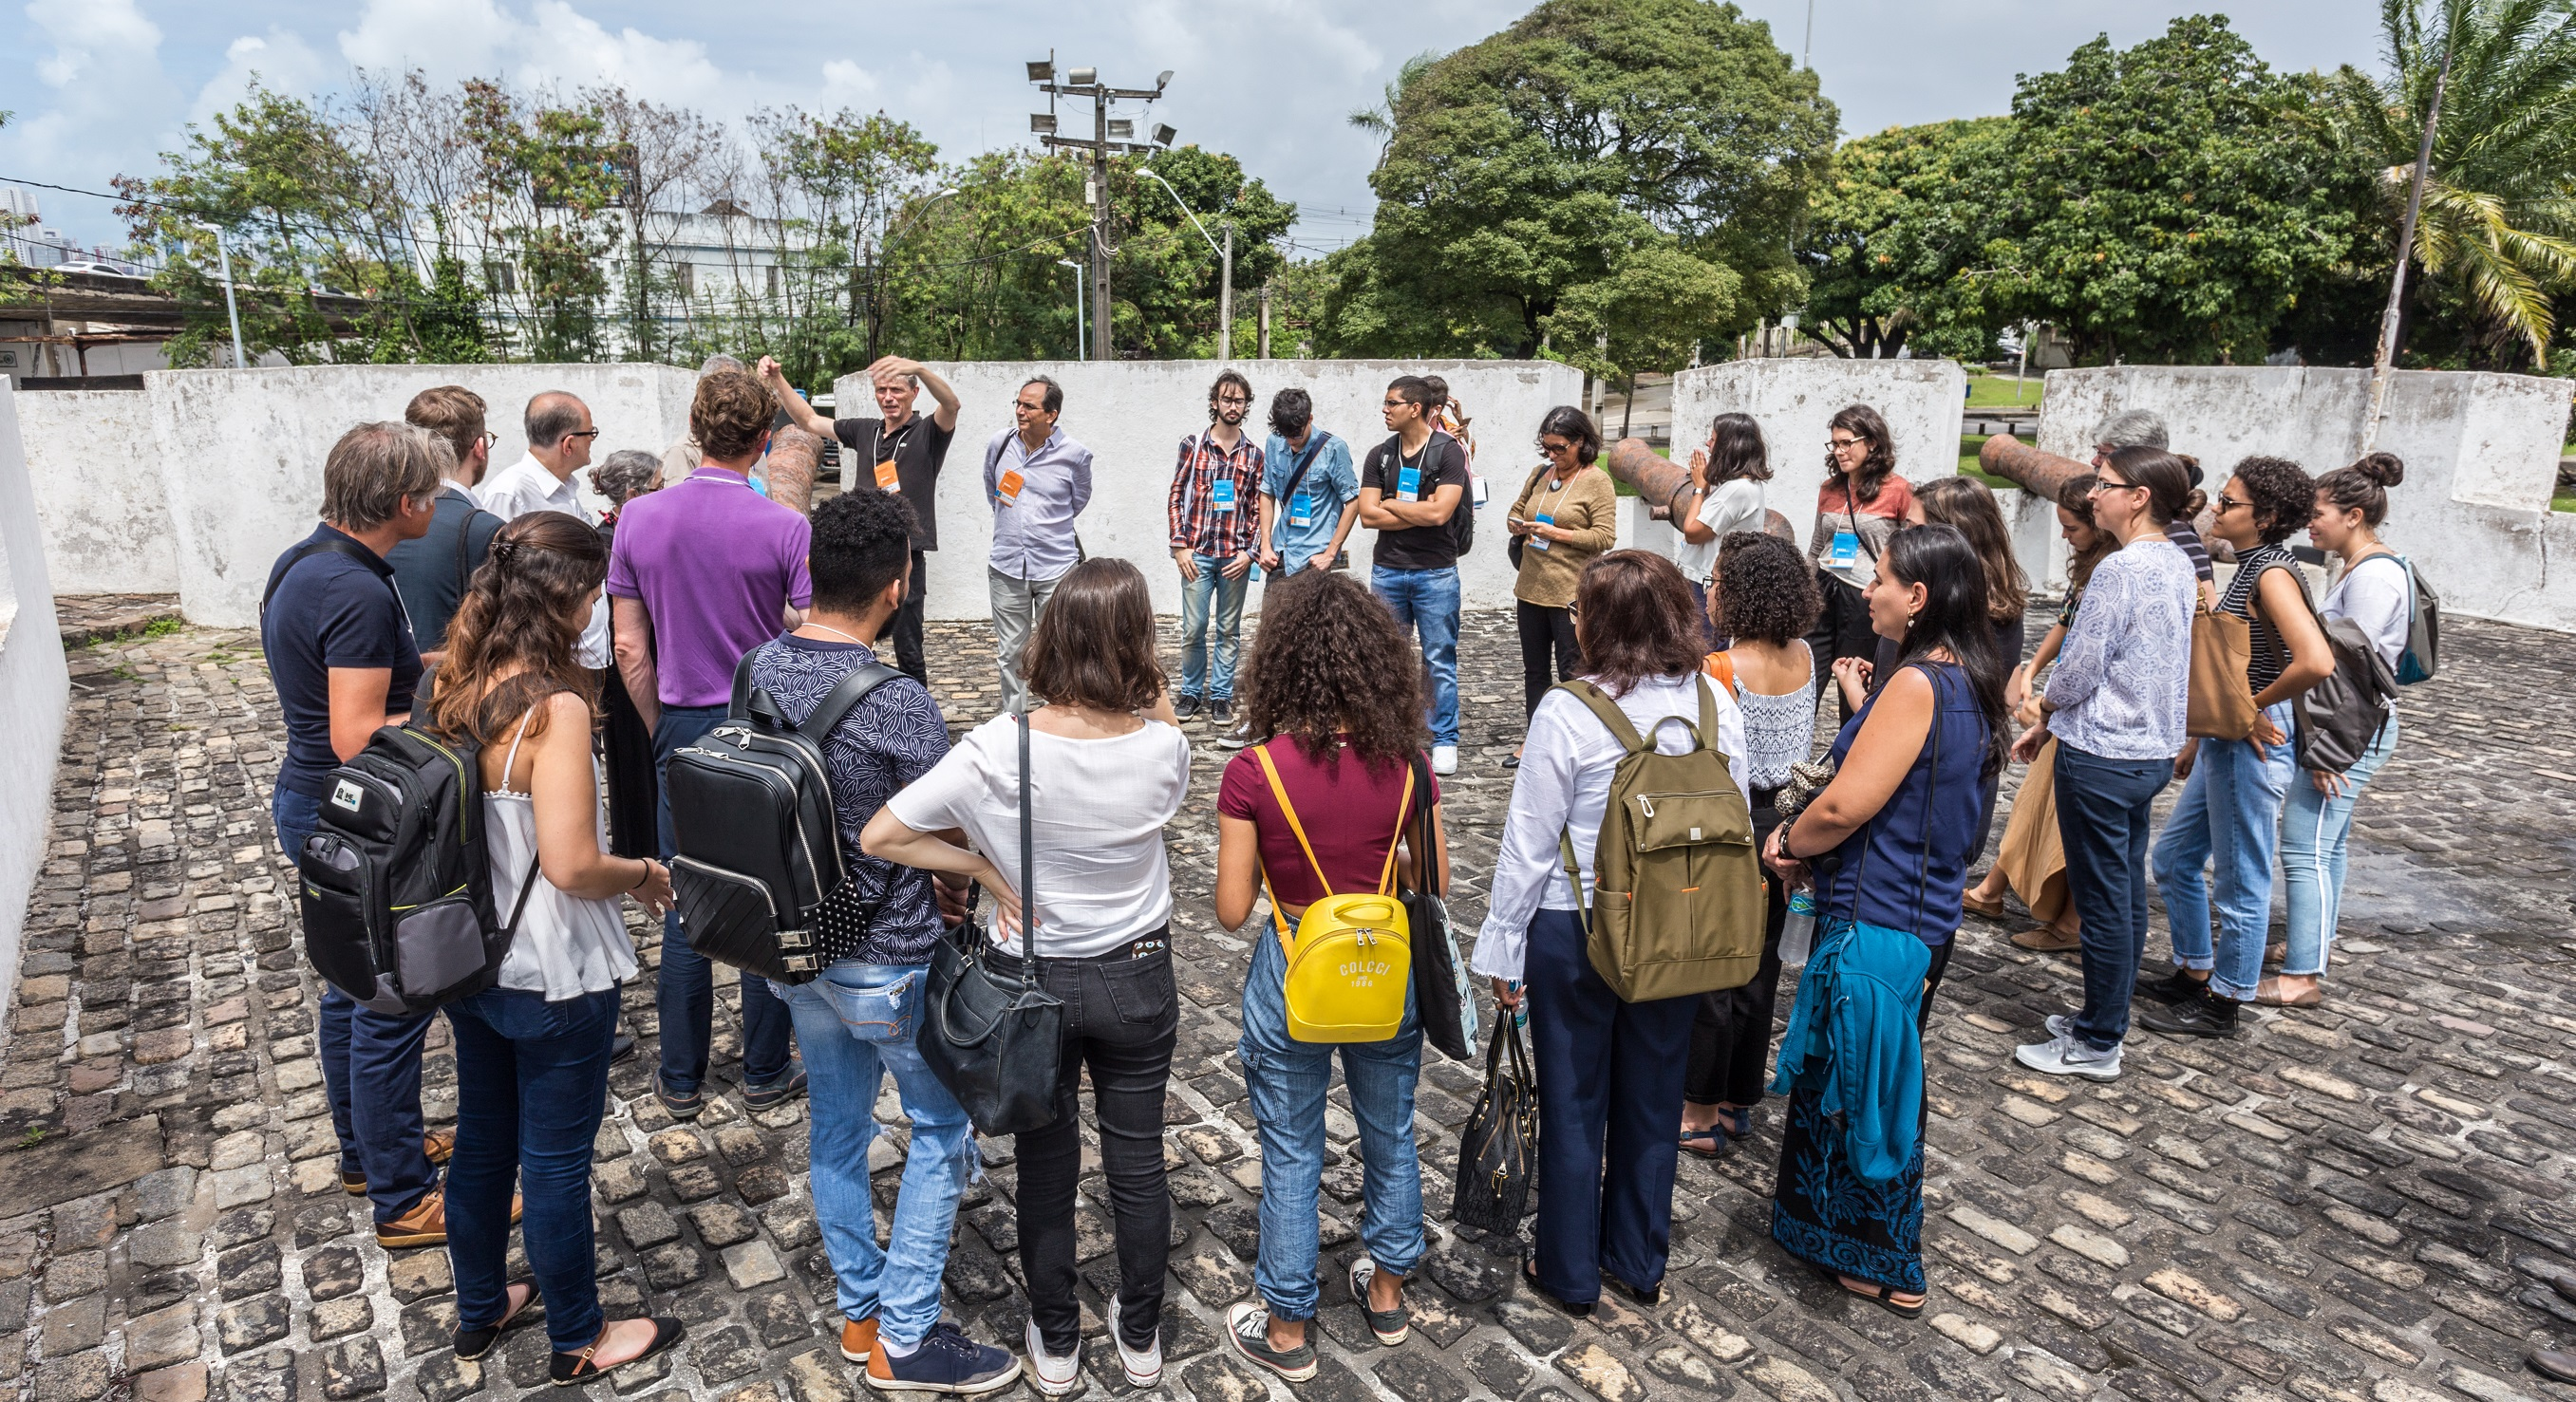 Participants of the workshop 'RxH 2019' (1-6 September 2019) listening to Paul Meurs (back, left) in Recife, Brazil (photo: Ariano Rodrigo).